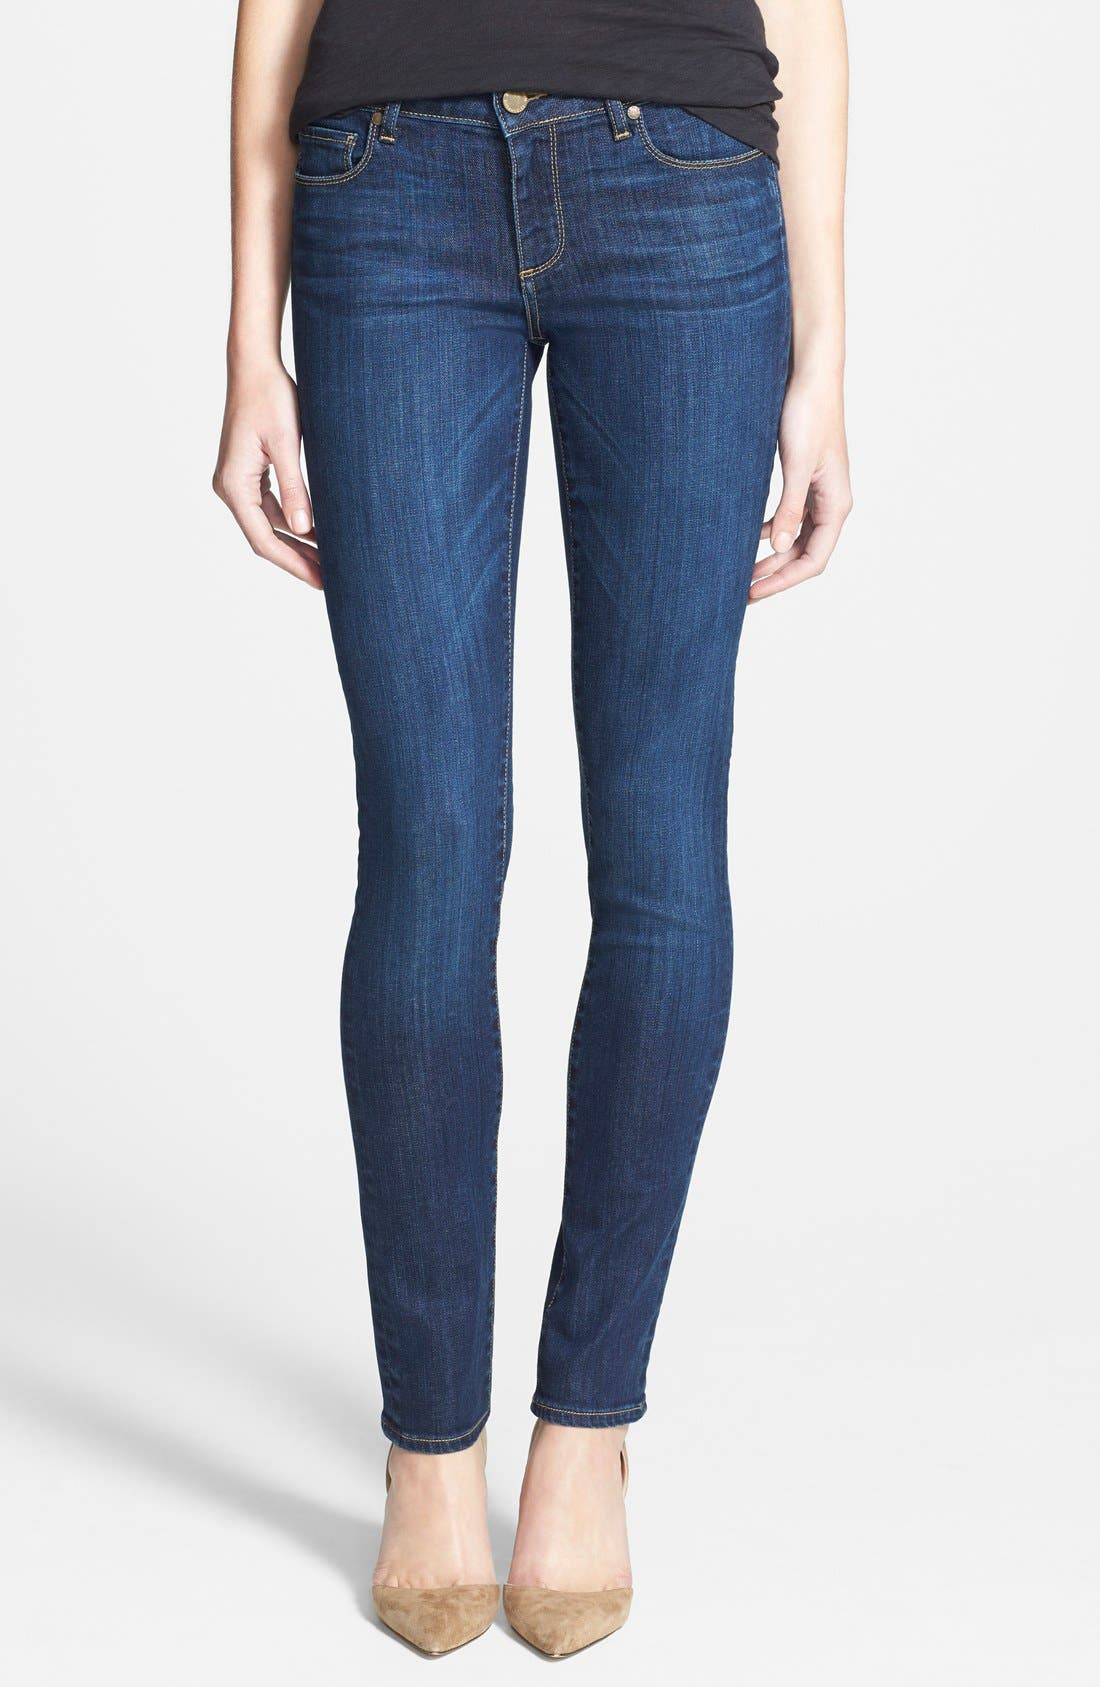 Alternate Image 1 Selected - Paige Denim 'Skyline' Skinny Jeans (Lange)